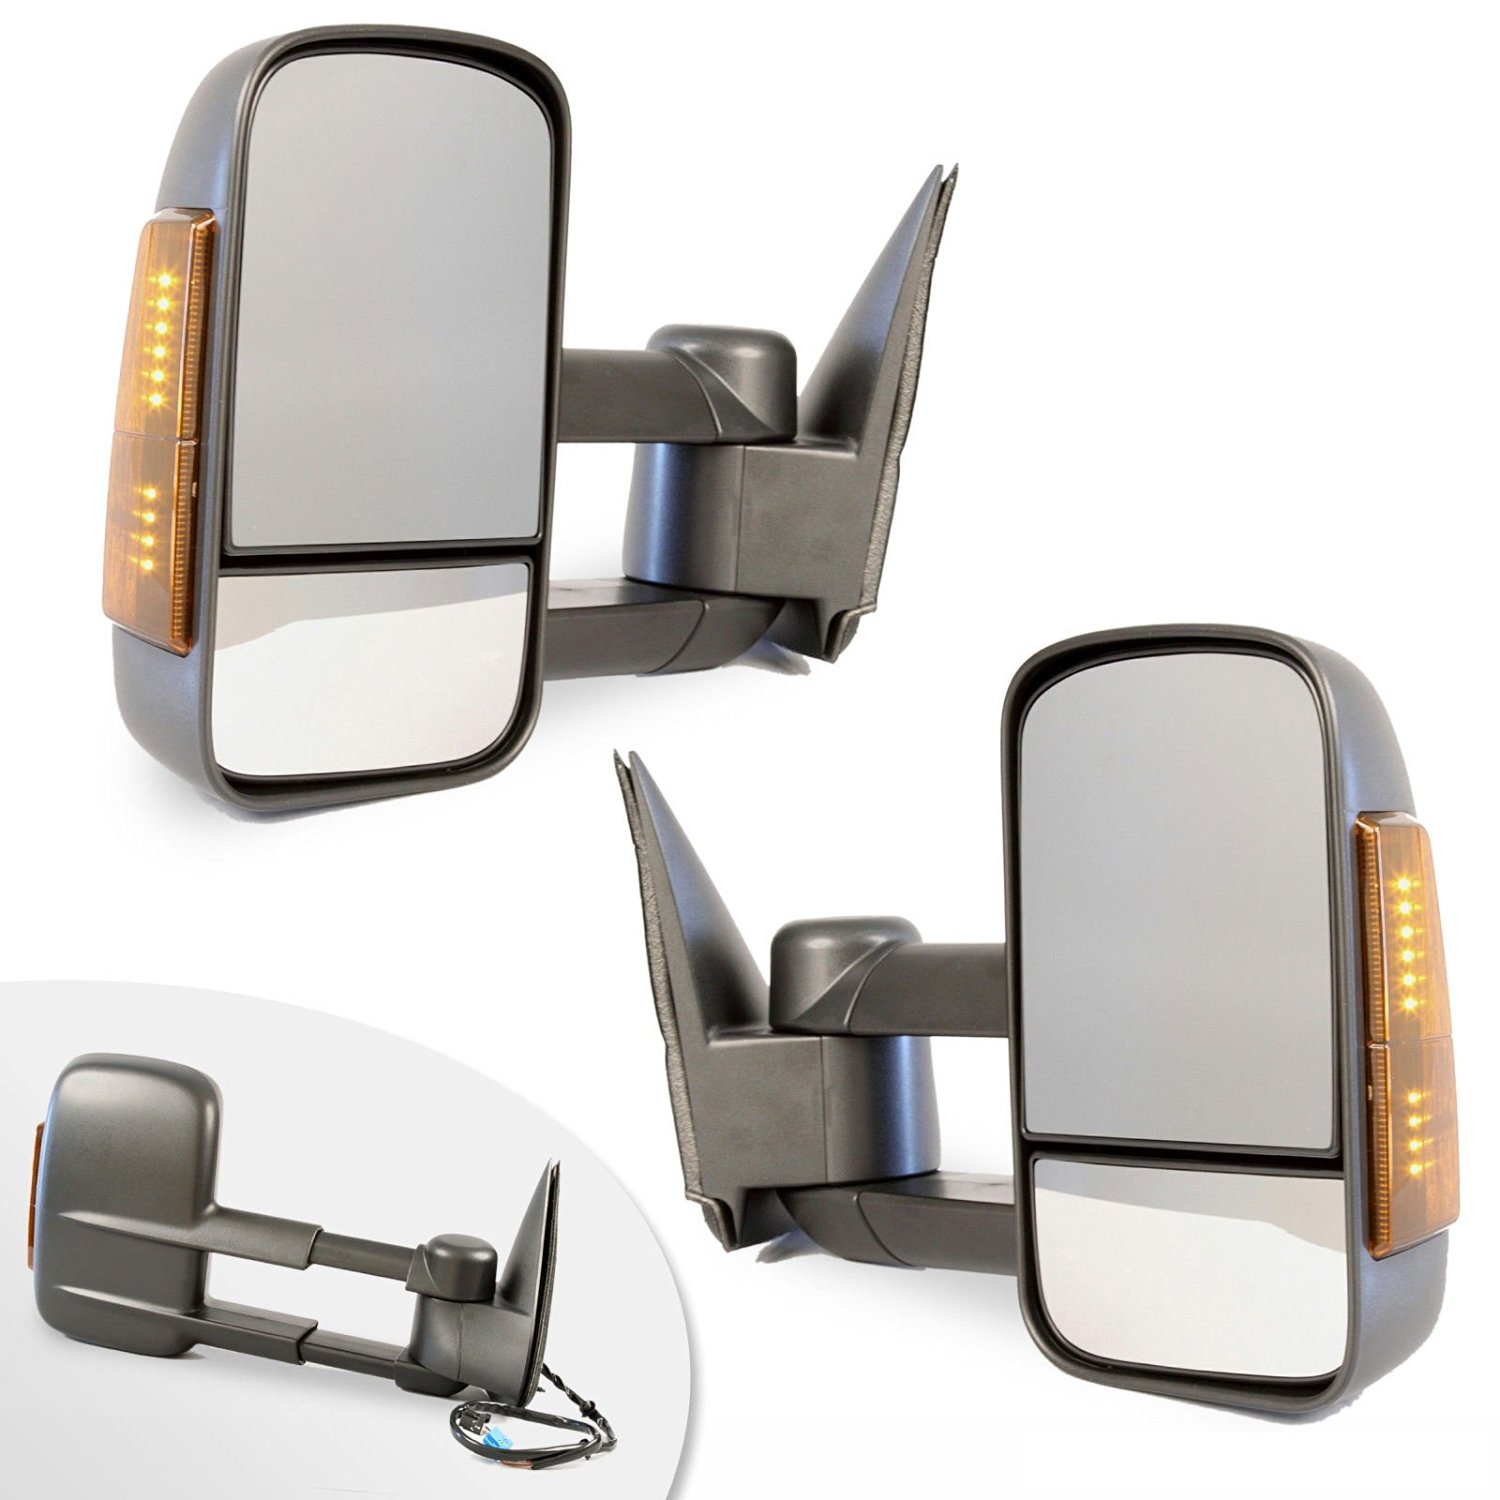 Towing Mirrors 2003-2007 Chevy/GMC Silverado/Sierra Power Heated Signal Side Mirror Pair (2004 2005 2006 models 07 Classic)